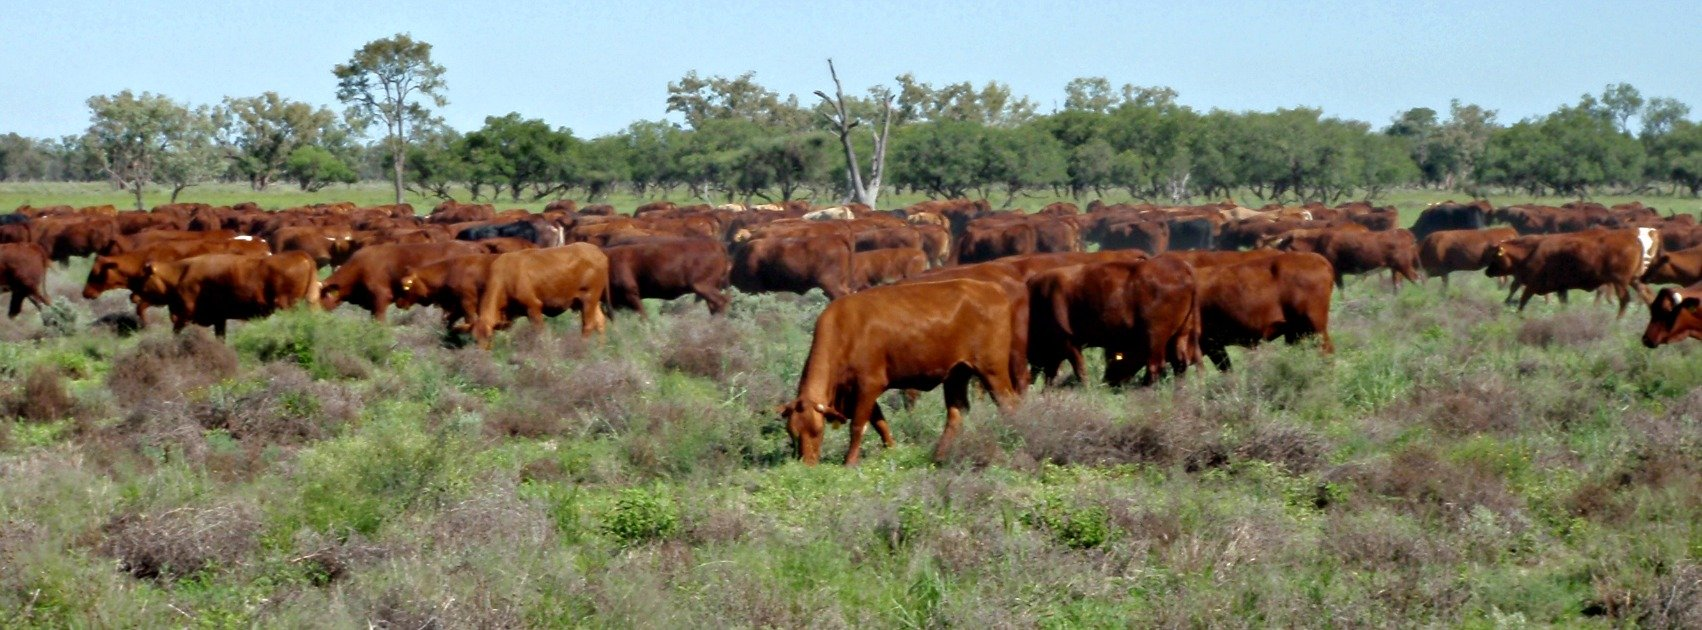 Cattle grazing in the field